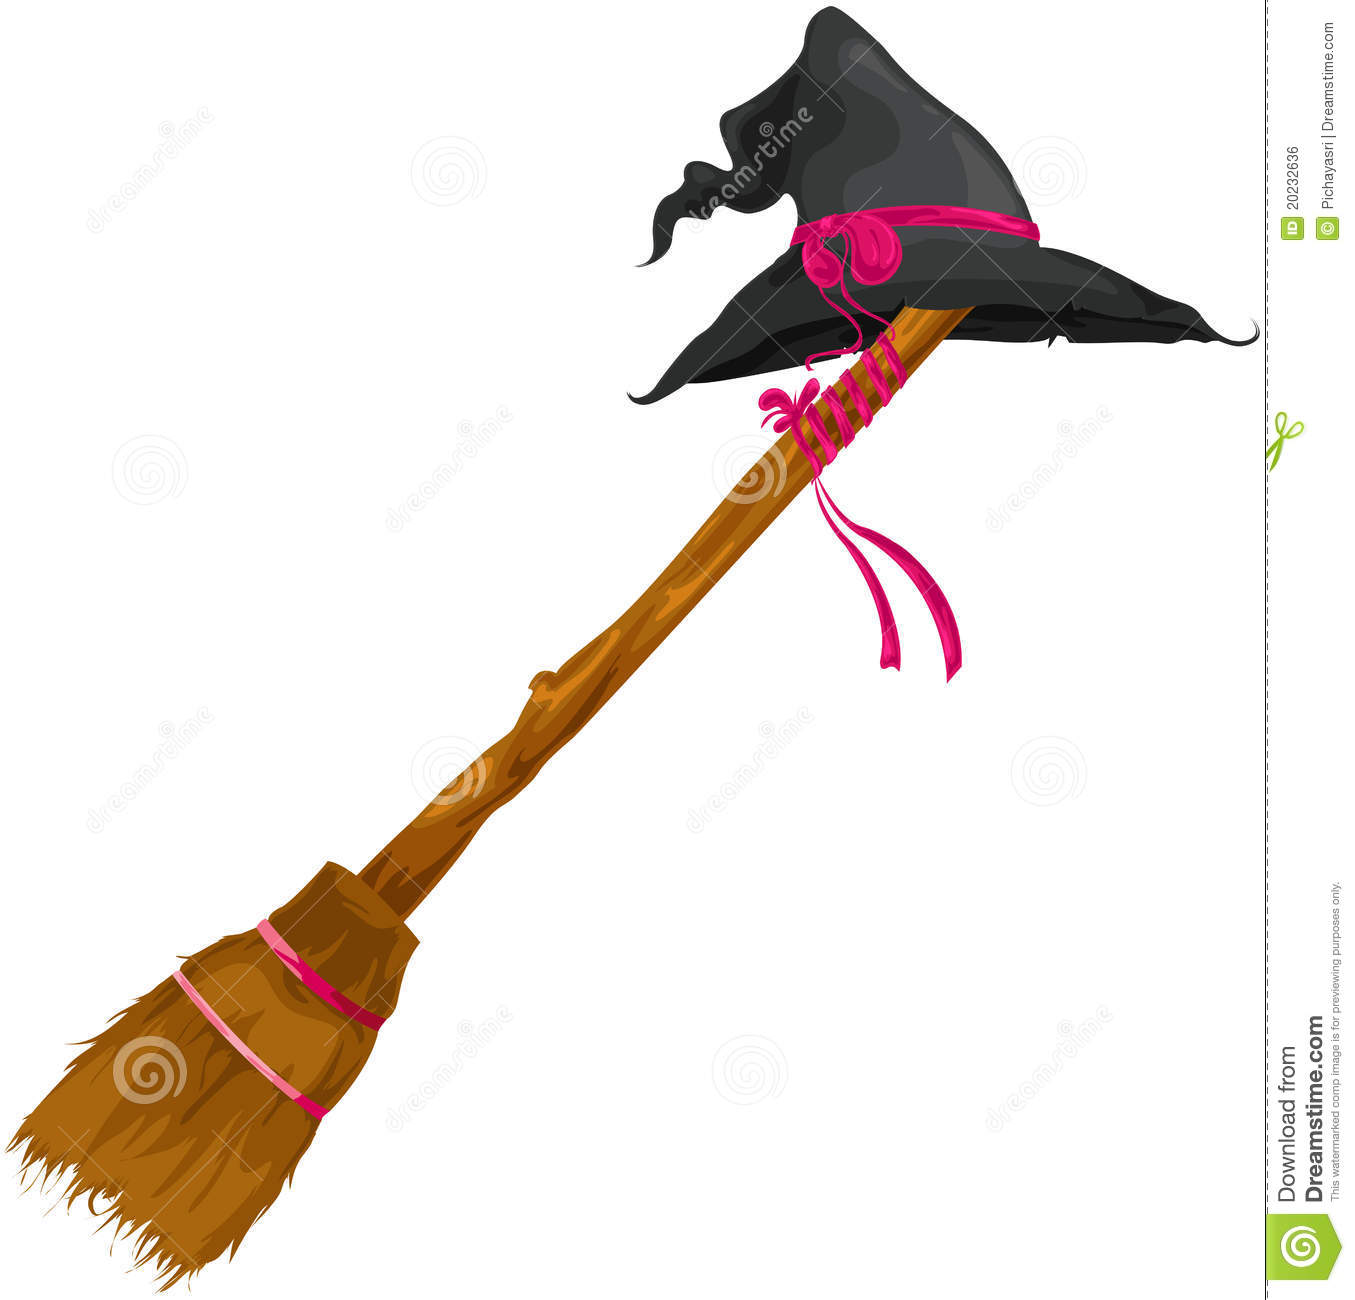 Witch Hat With Broom Royalty Free Stock Image - Image: 20232636